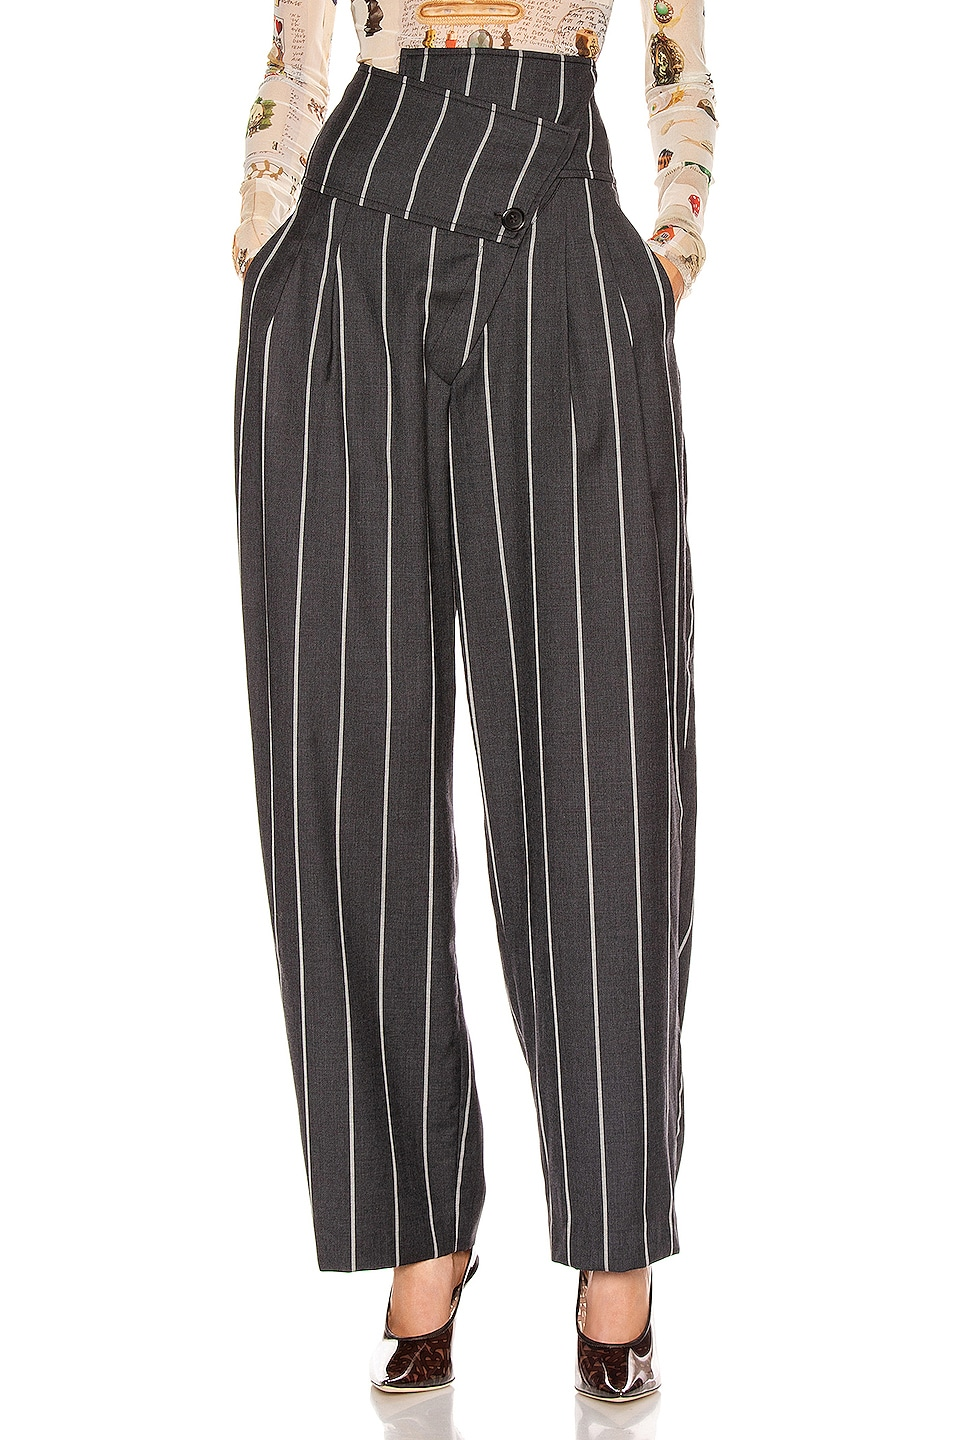 Image 2 of Monse Pinstripe Foldover Pant in Charcoal & Ivory